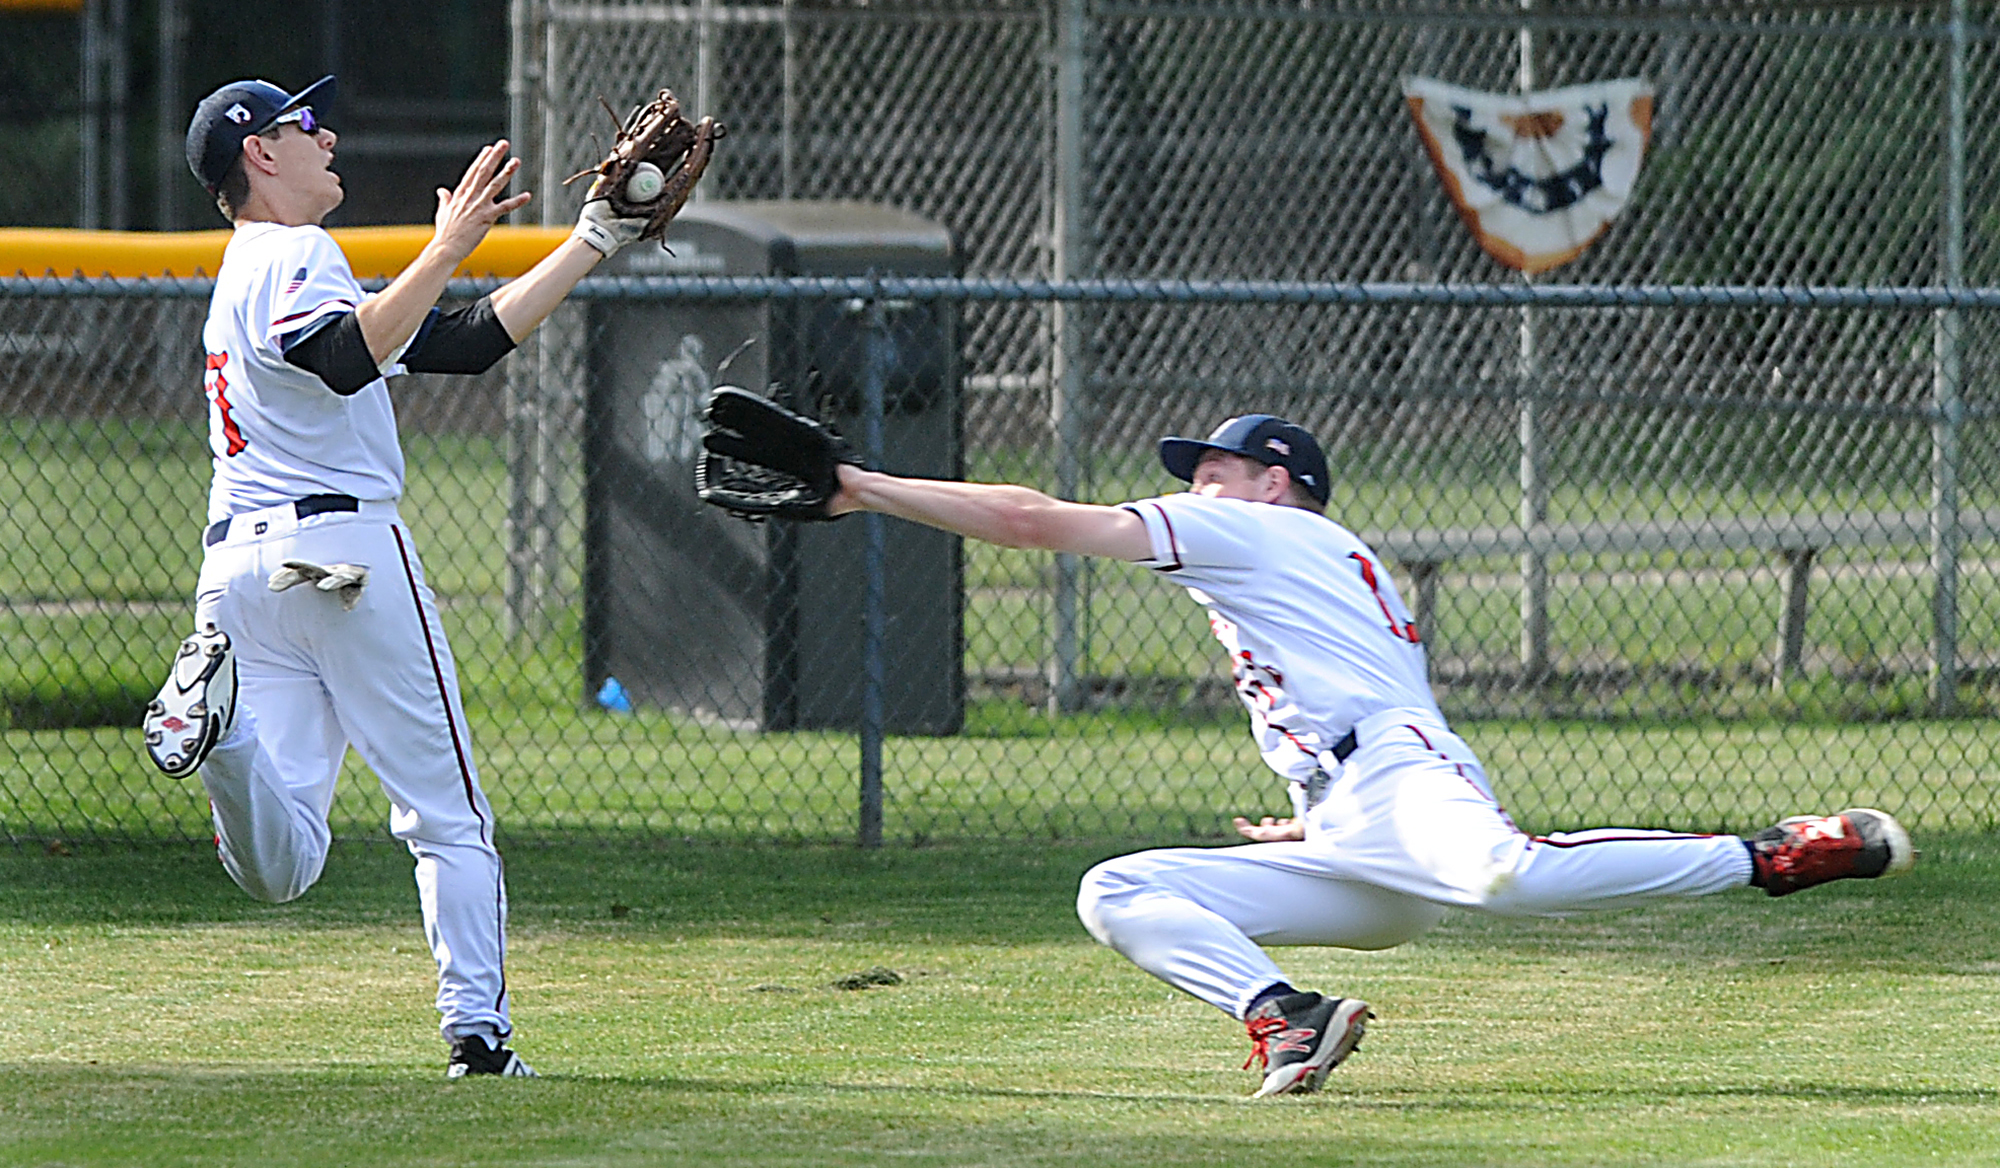 6/22/17-- NORTHBOROUGH-- Northborough Legion outfielder Max Morhardt makes a running diving catch with Collin Mitchell also in pursuit to end the first inning against Grafton Hill Thursday evening. [Daily News and Wicked Local Staff Photo/Art Illman]